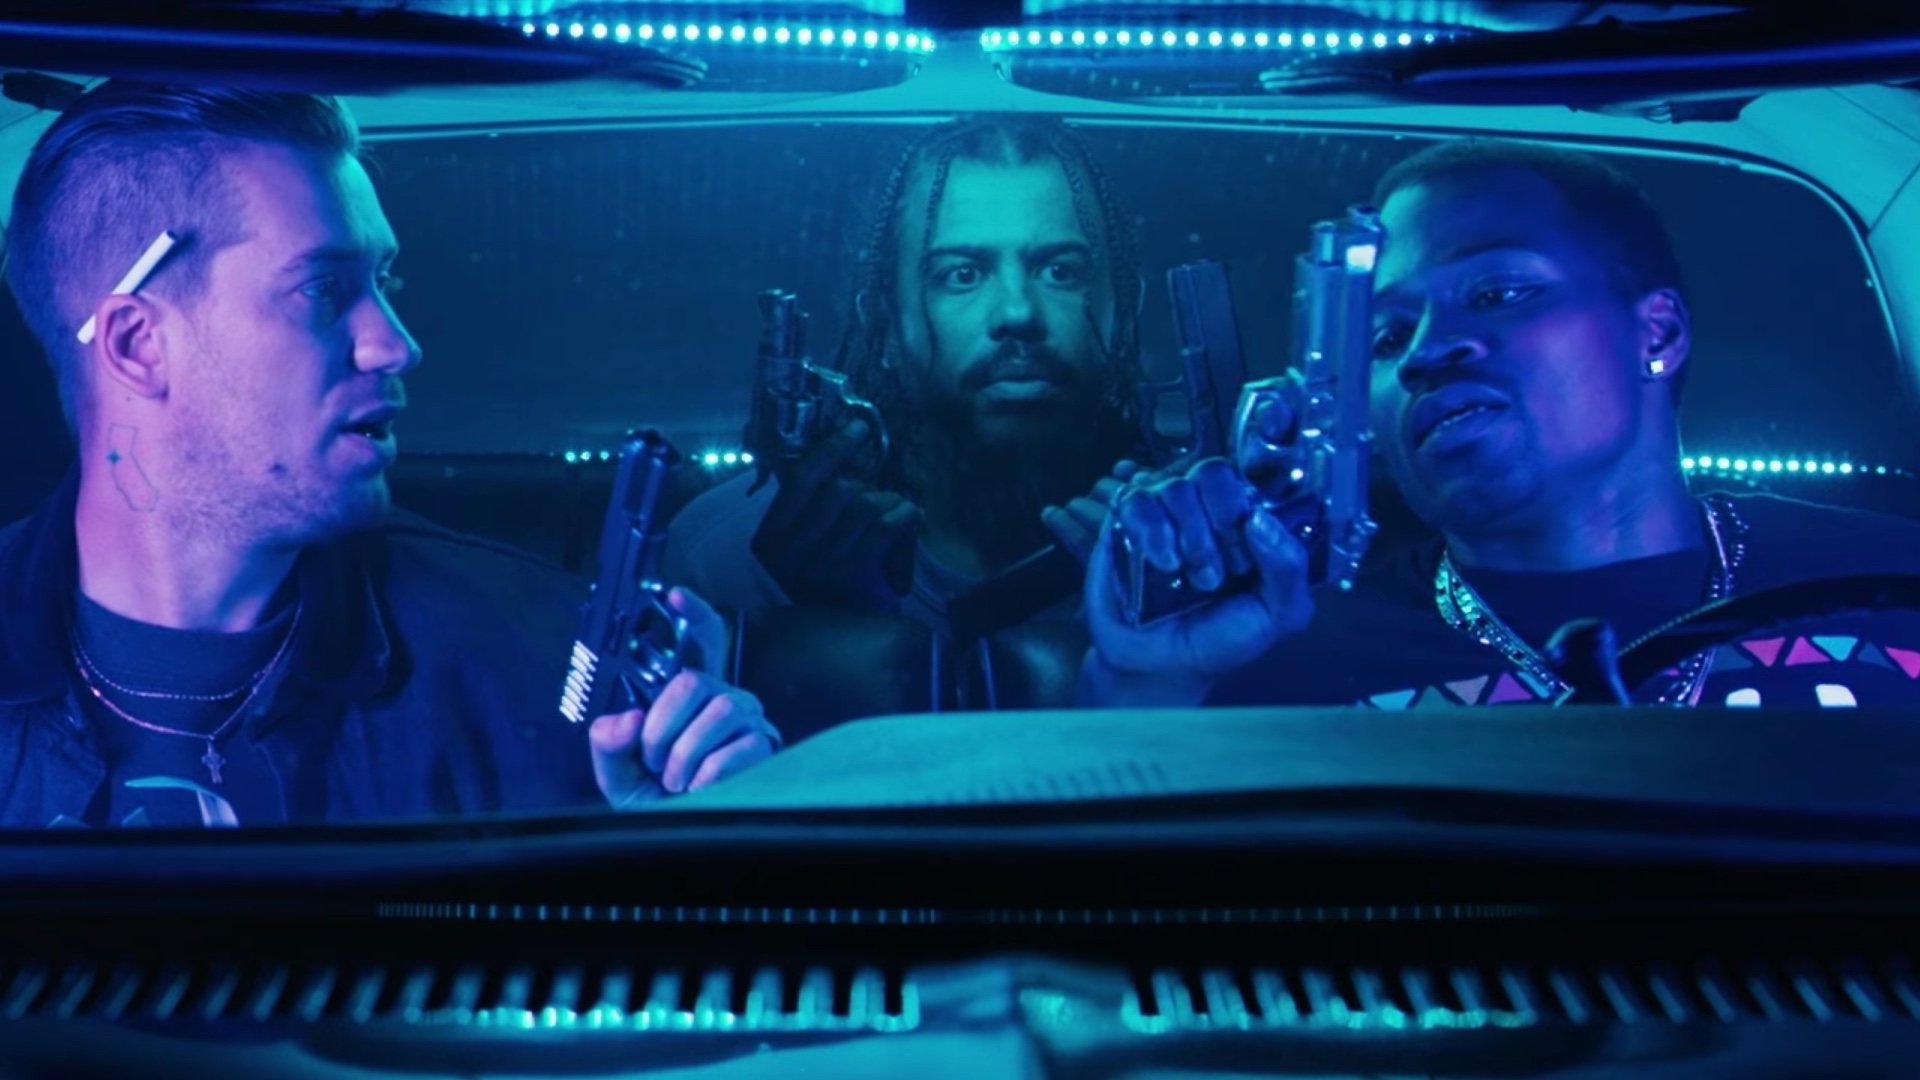 boom reviews Blindspotting